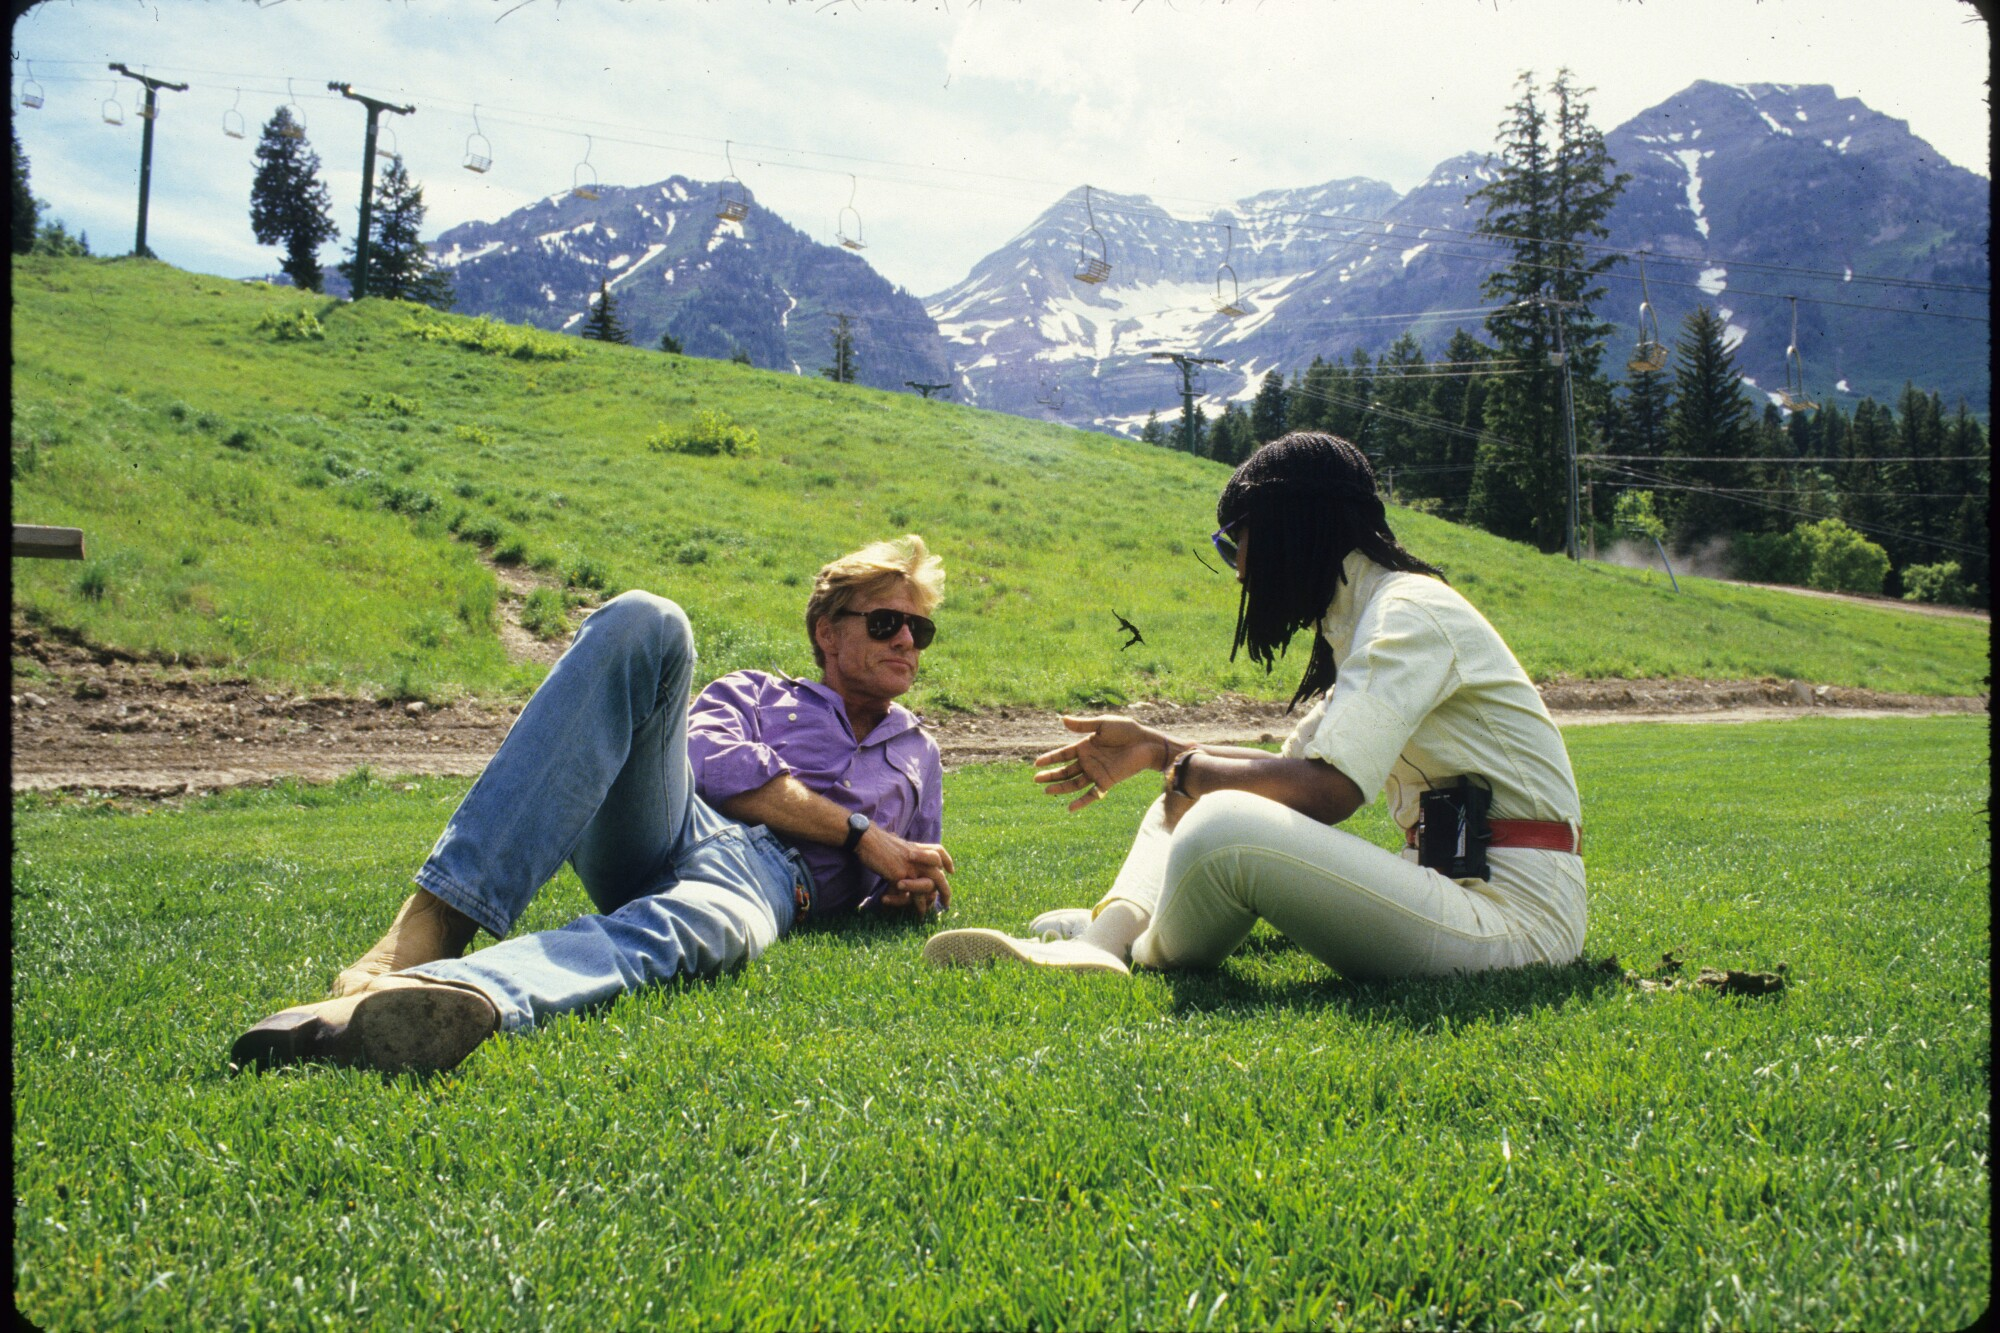 A man, left, and a woman chat in the grass with mountains in the background